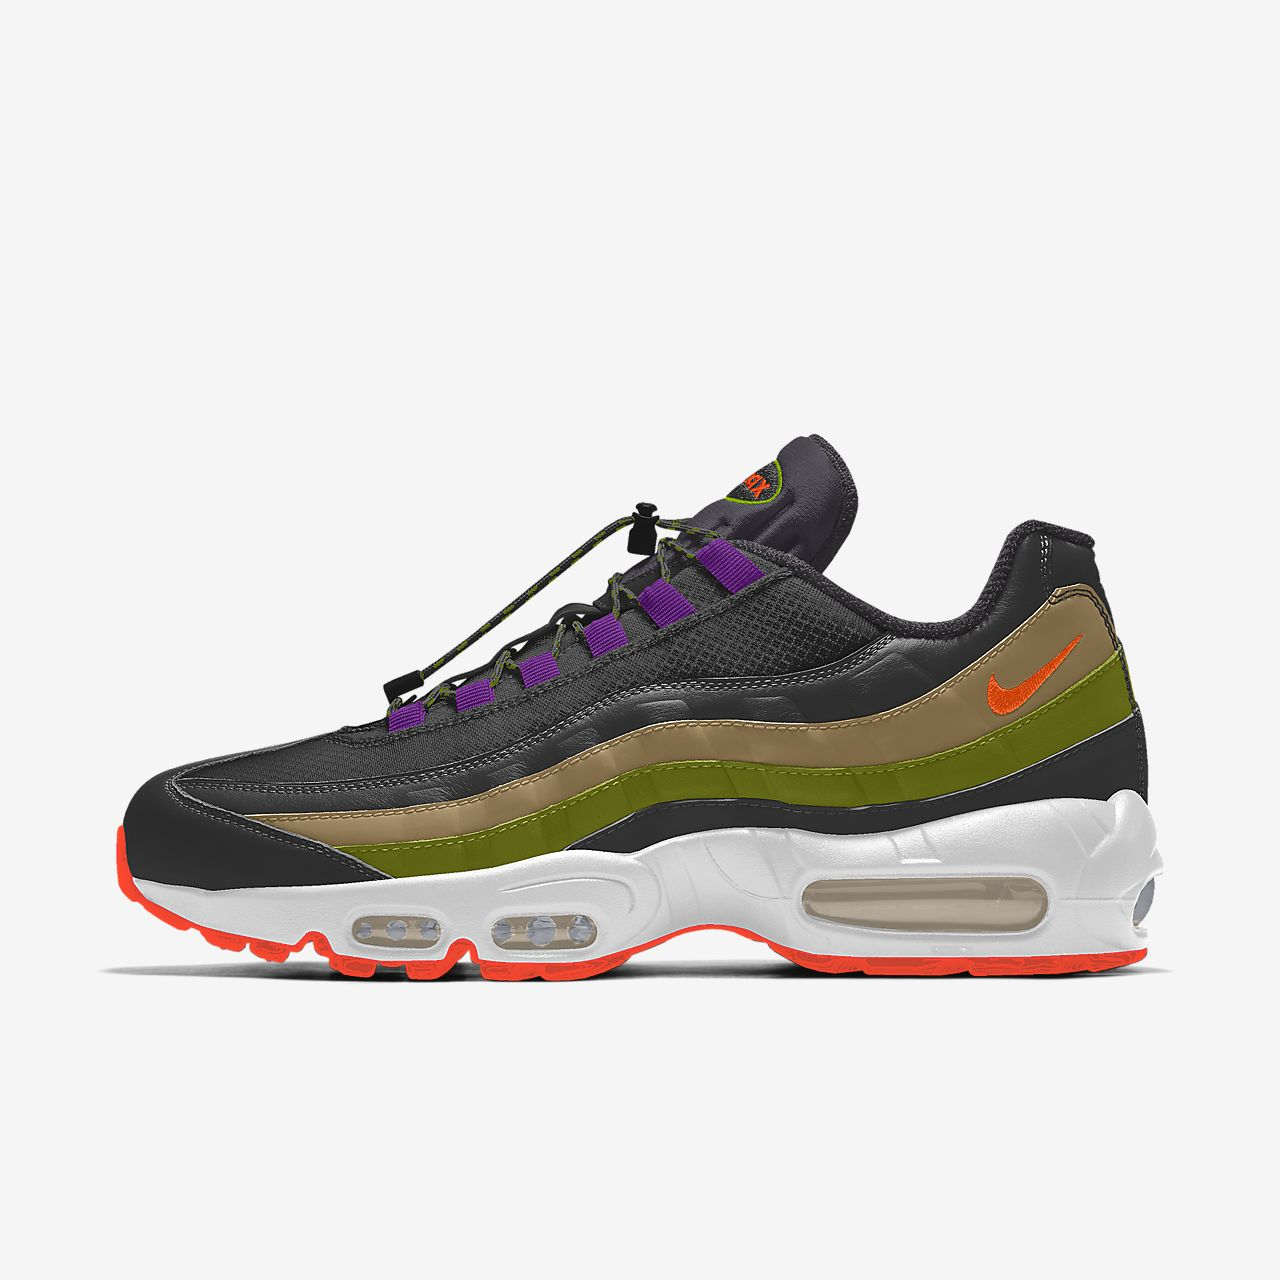 Nike Air Max 95 Premium IGC By You Custom Men's Lifestyle Shoe